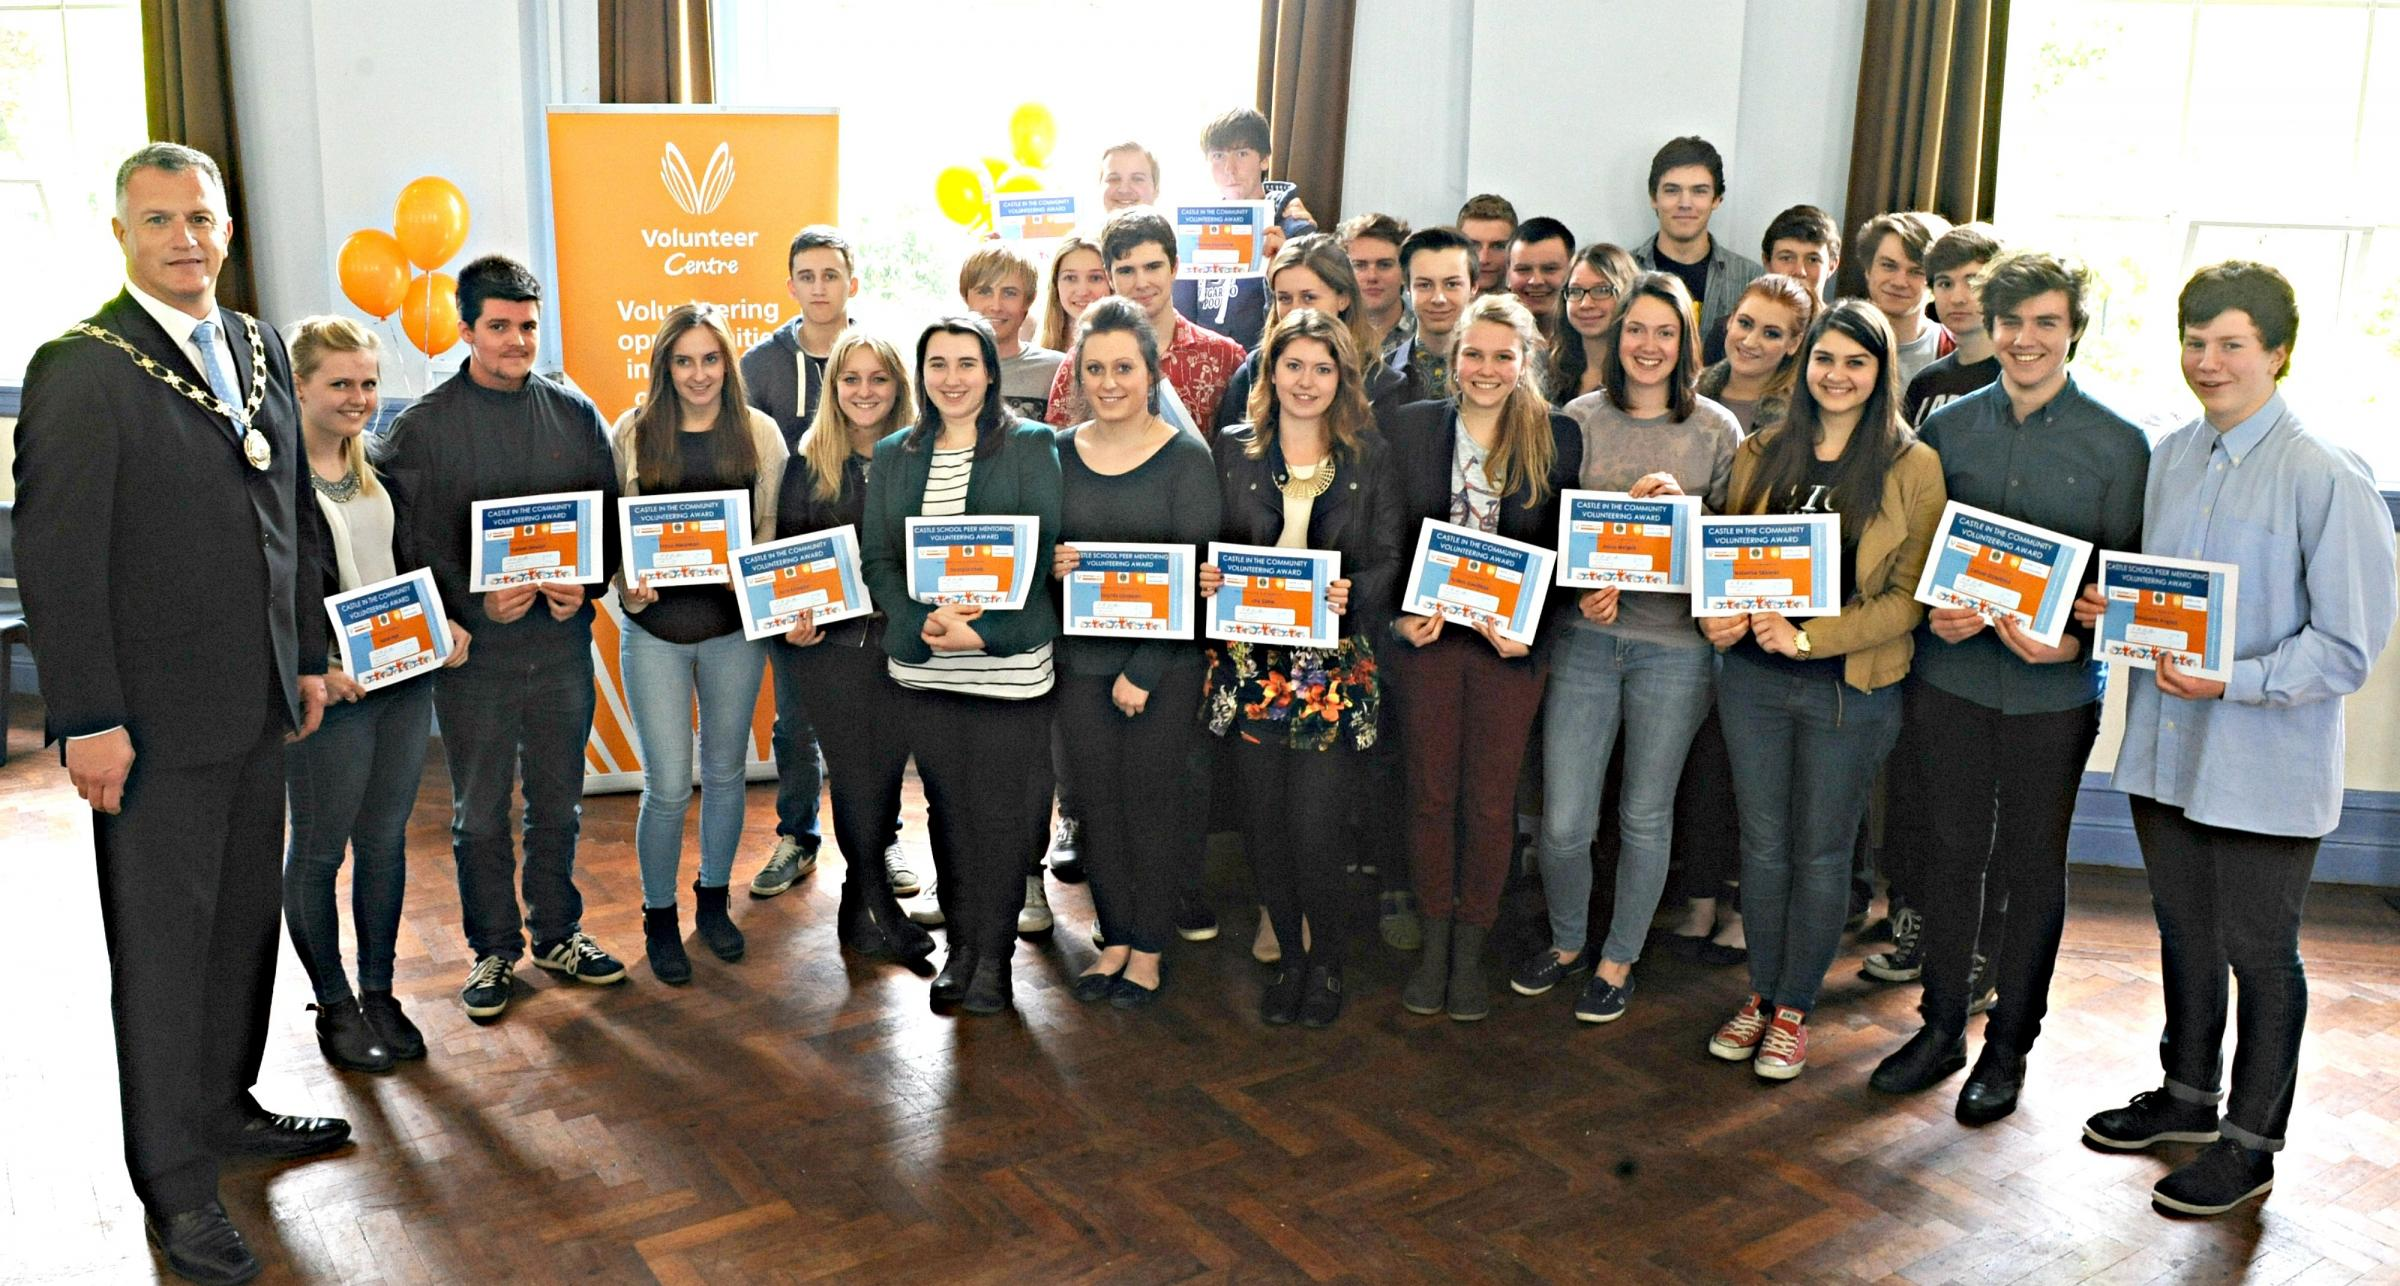 Cllr Ian Boulton, Chairman of South Gloucestershire Council with Castle School sixth form students after he presented awards to students taking part in the Castle School Community Scheme run with Thornbury Volunteer Centre (6007659)